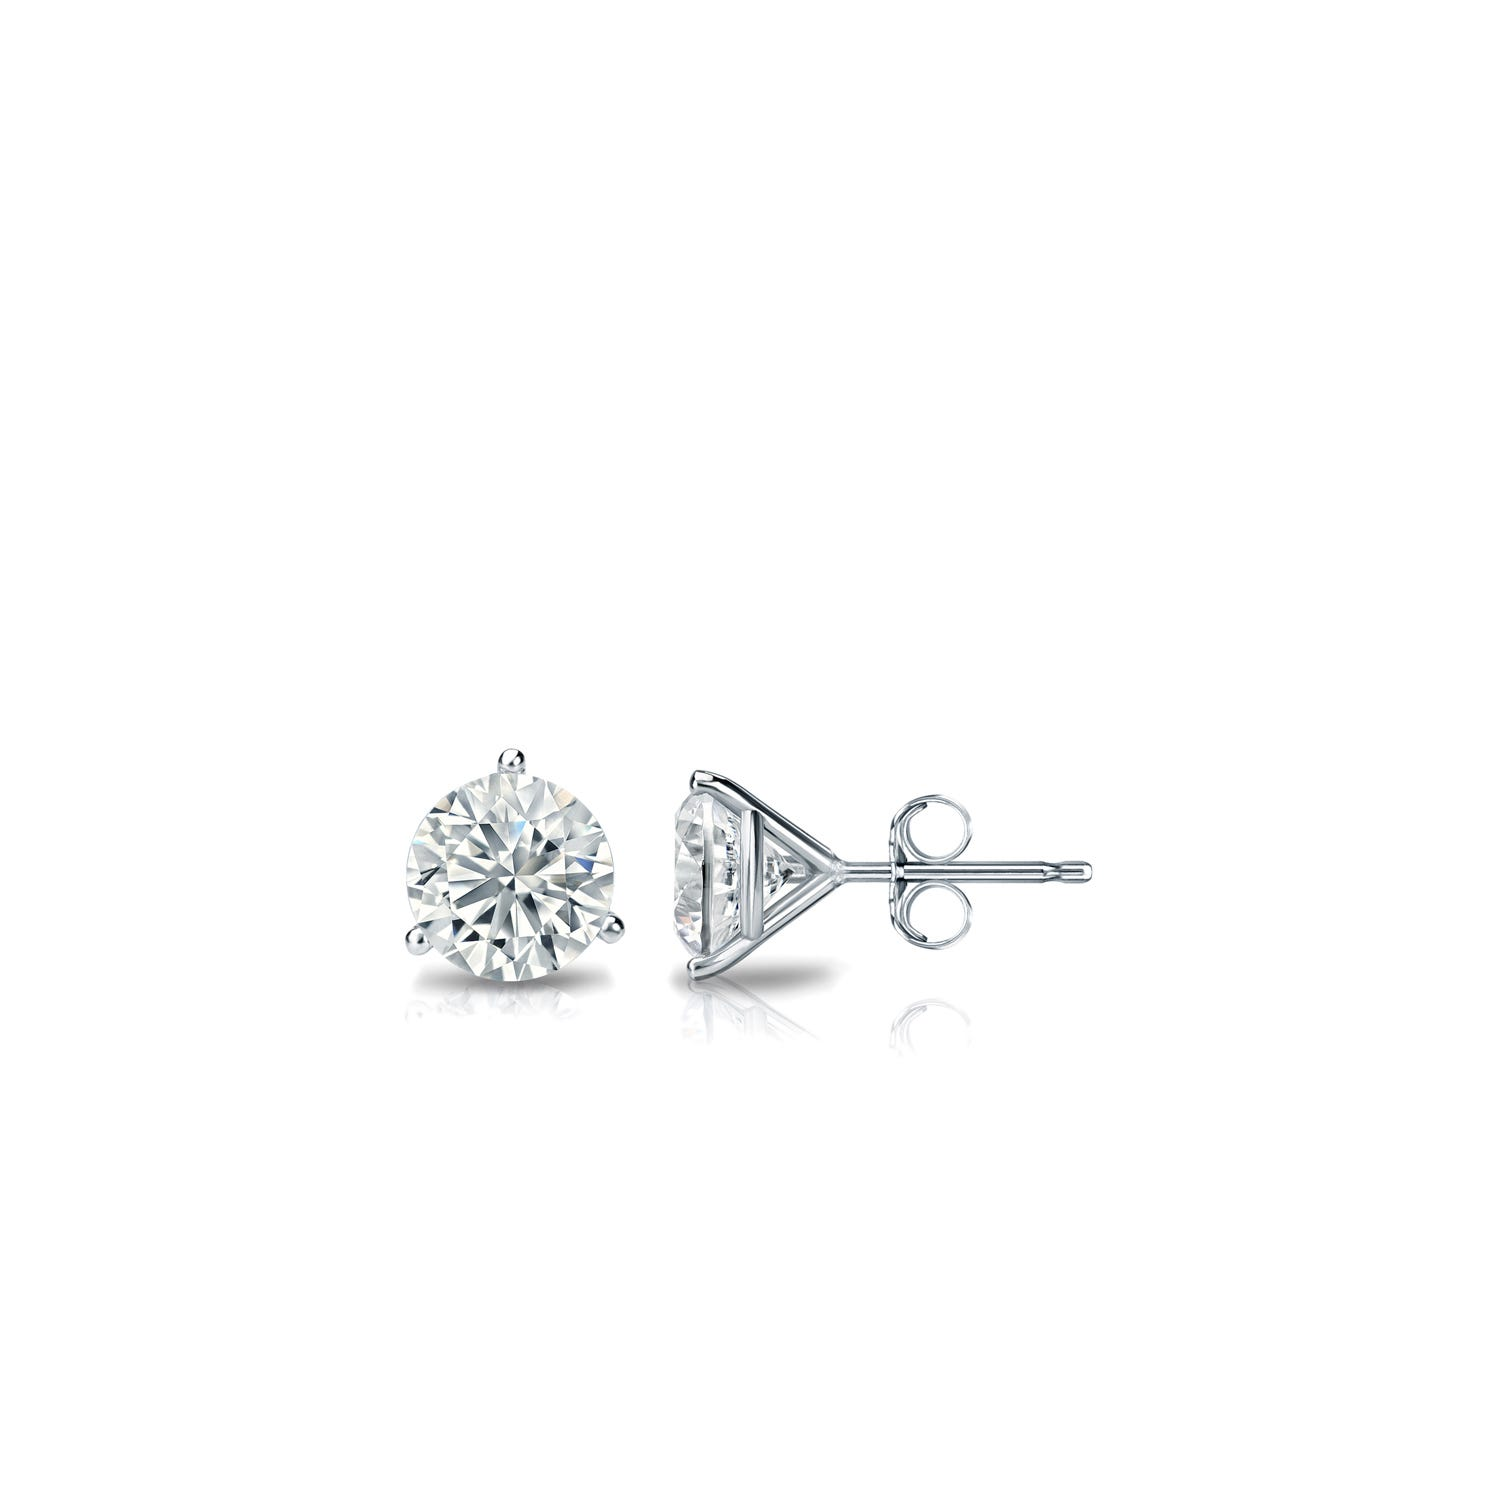 1/10 CTTW Round Diamond Solitaire Stud Earrings IJ VS2 in Platinum 3-Prong Setting